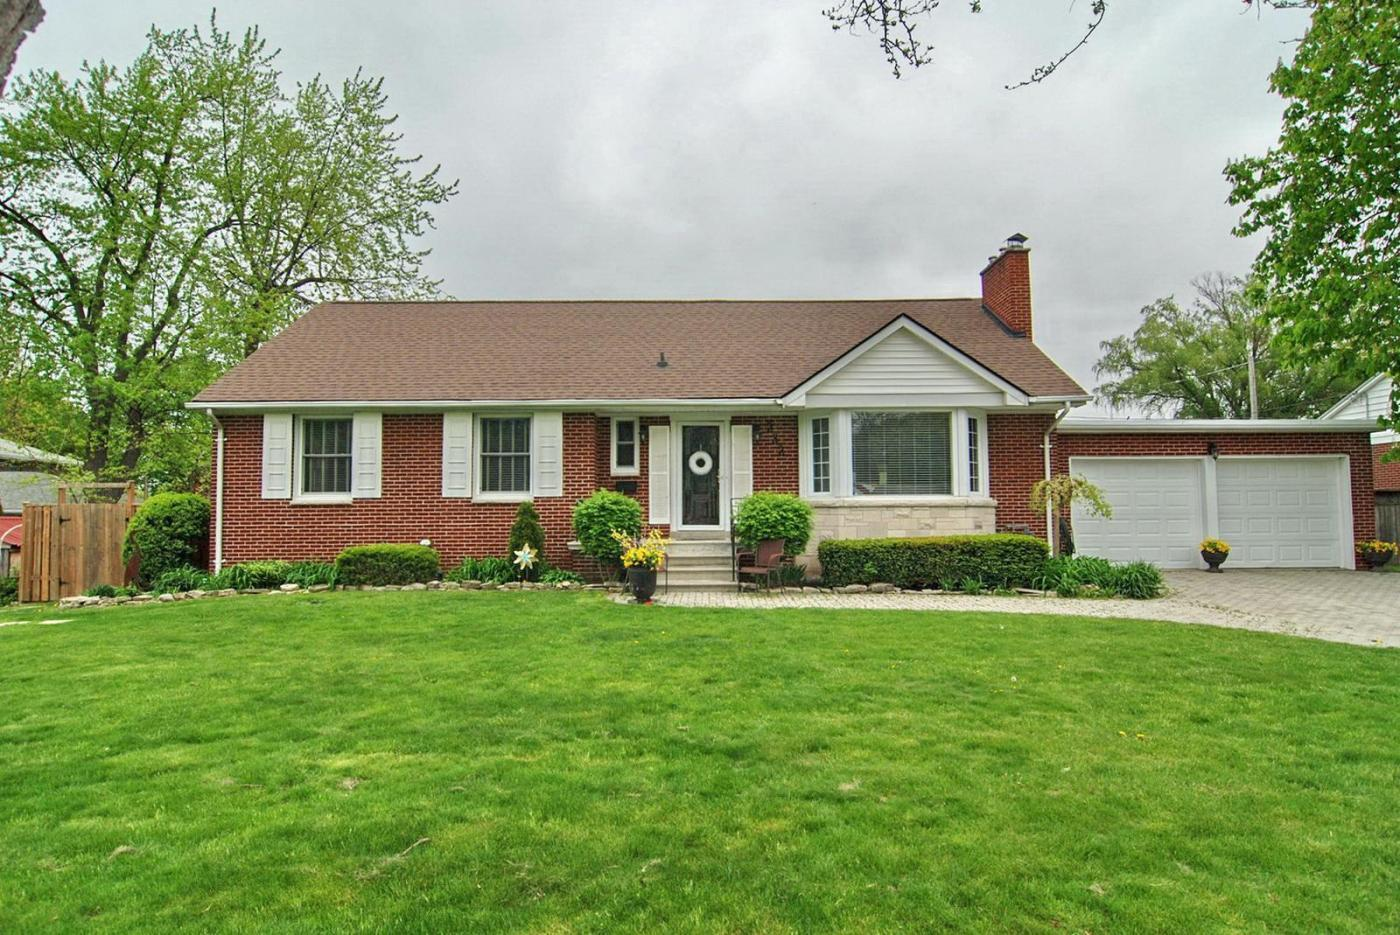 Fantastic Home with Large back yard. Coming soon.